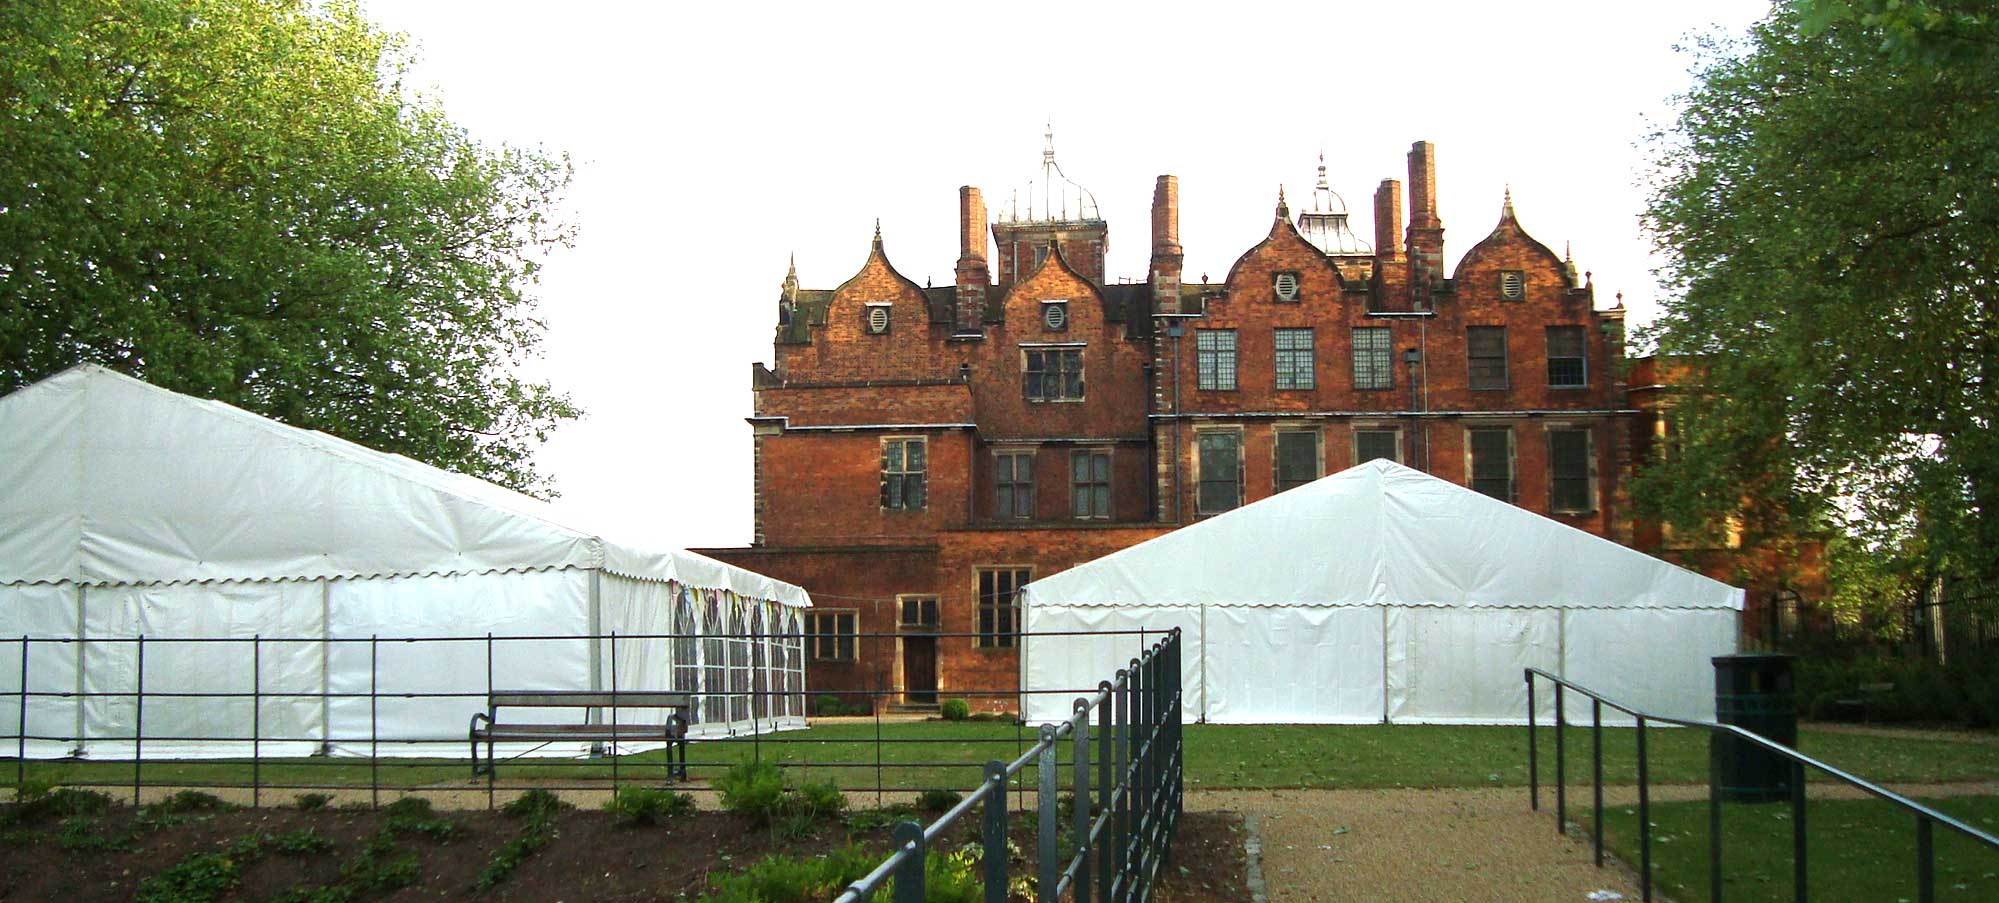 Marquee outside Aston Hall